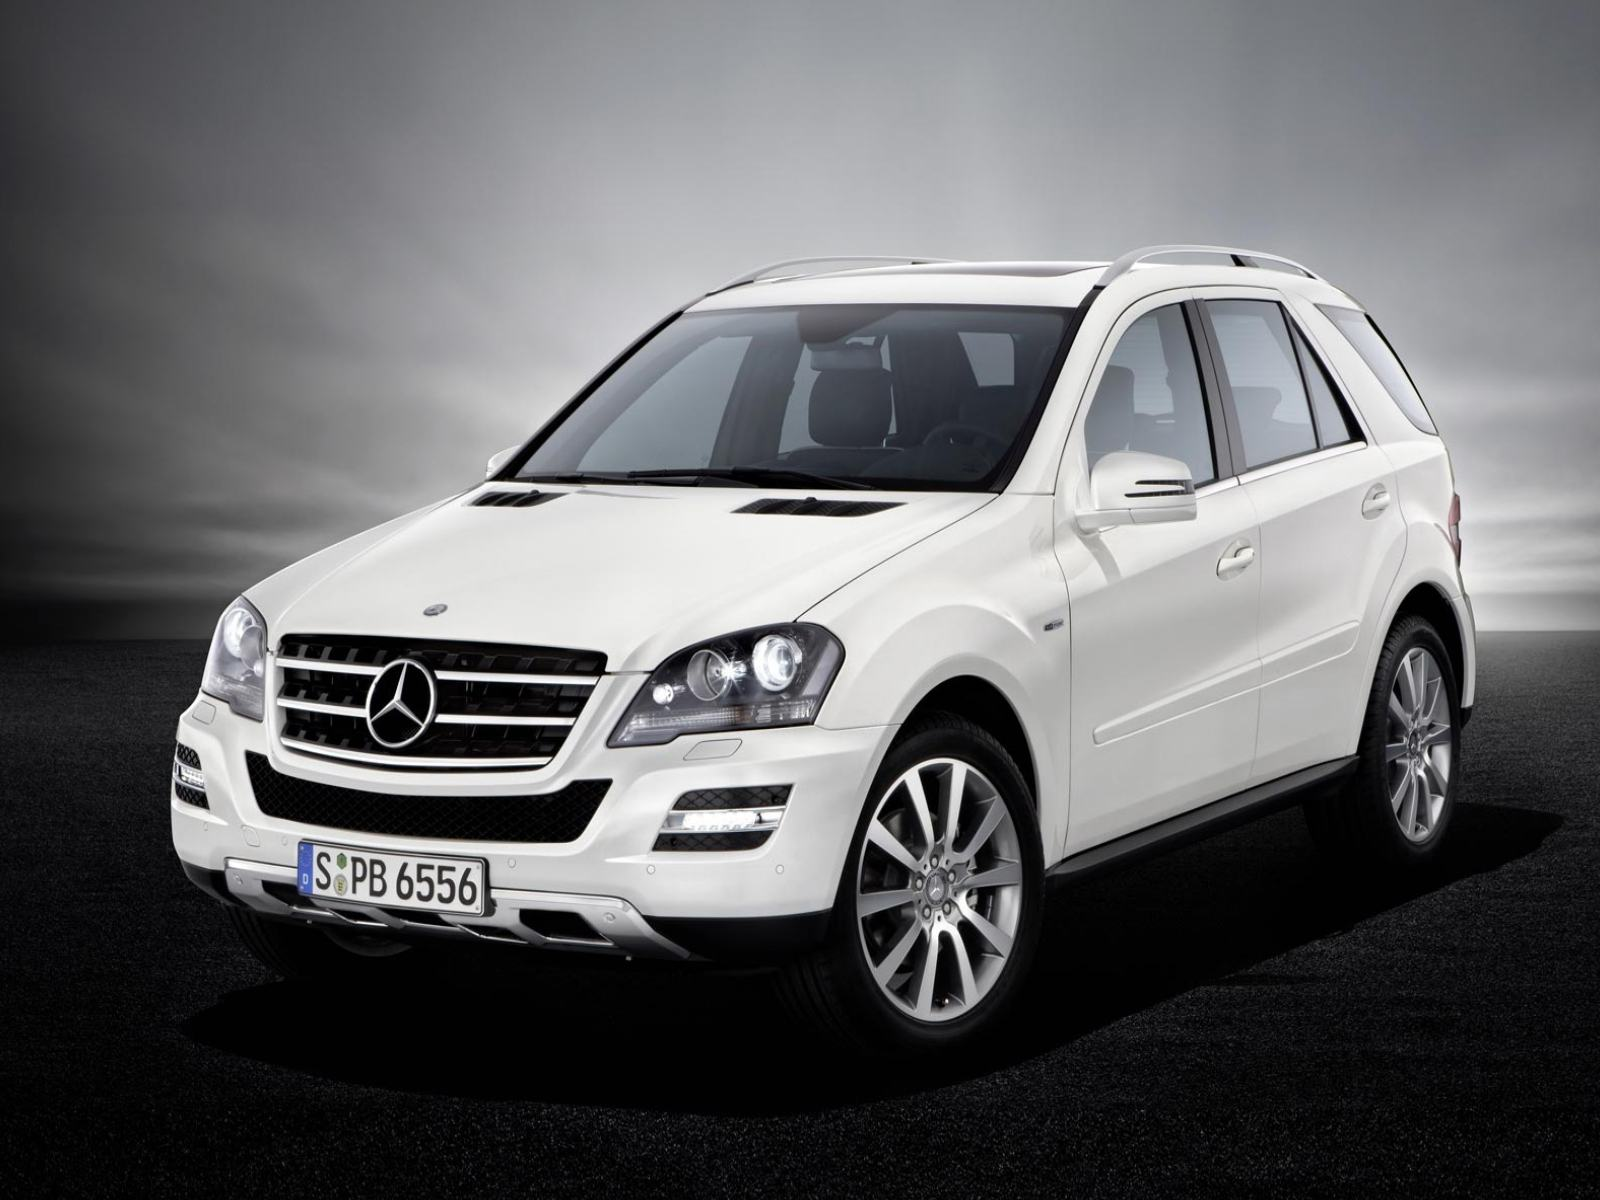 Обои Mercedes Benz M-class 2010 Grand Edition 1600x1200